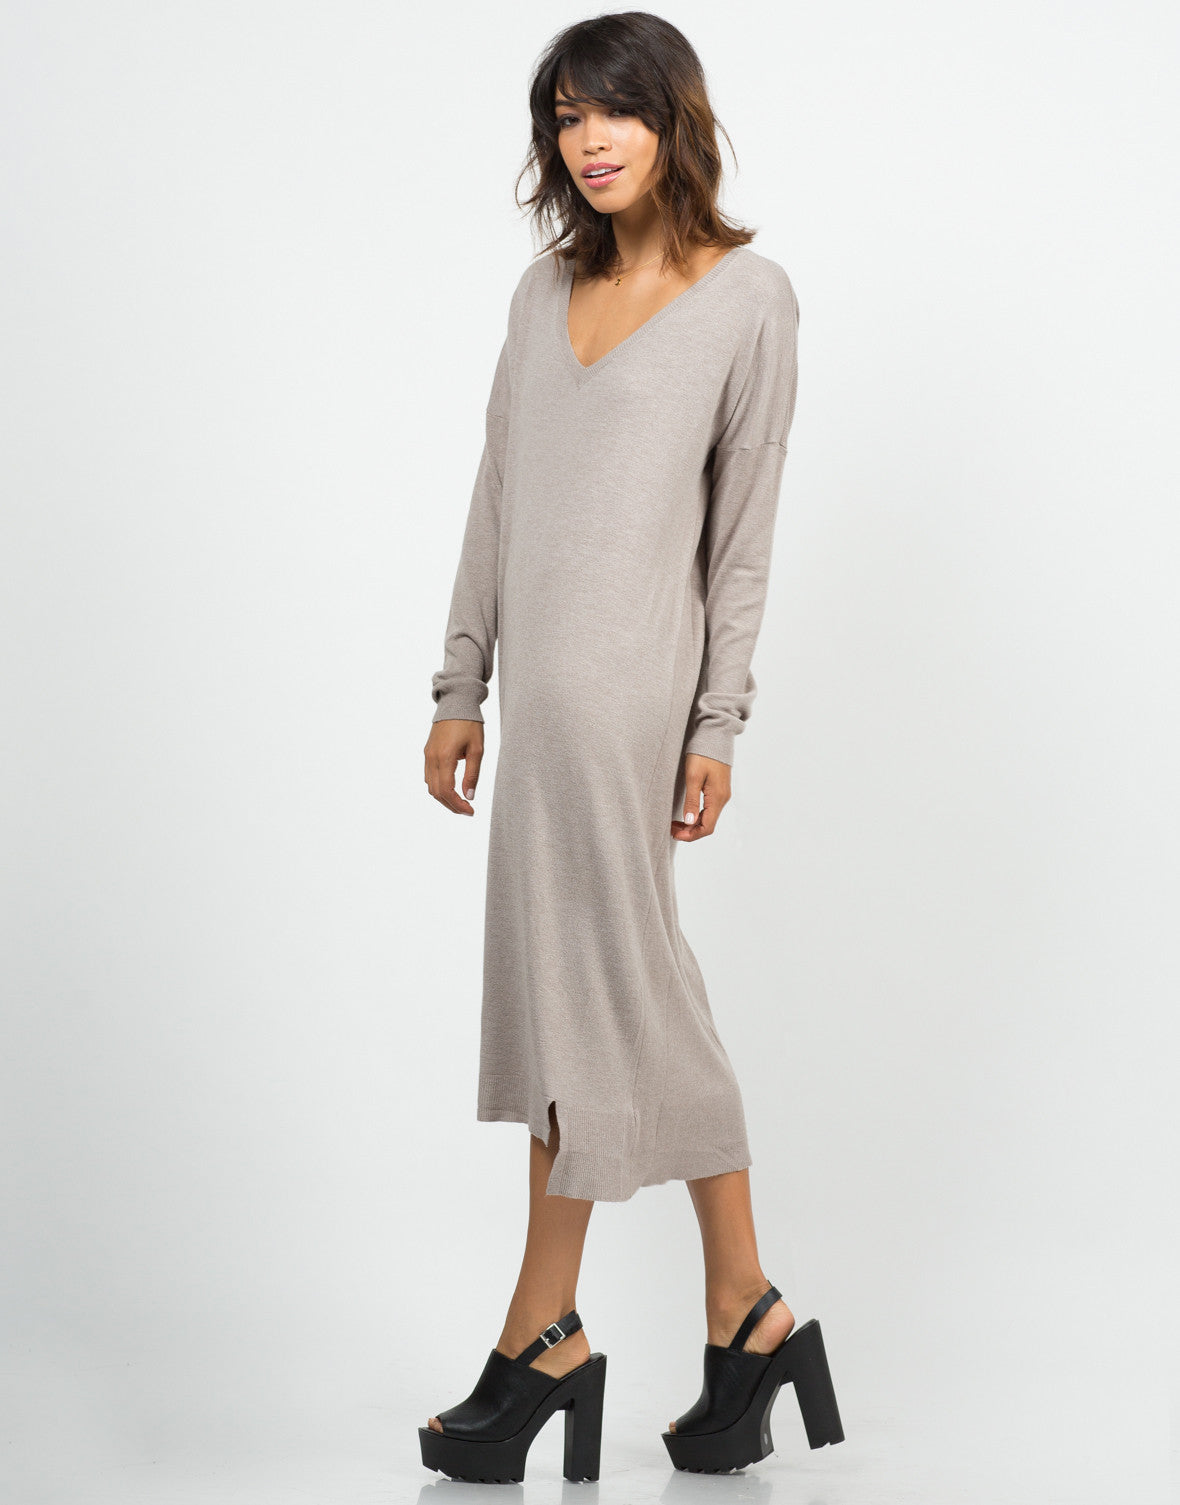 Long Sweater Dress - Maxi Dress - Womens Dresses U2013 2020AVE